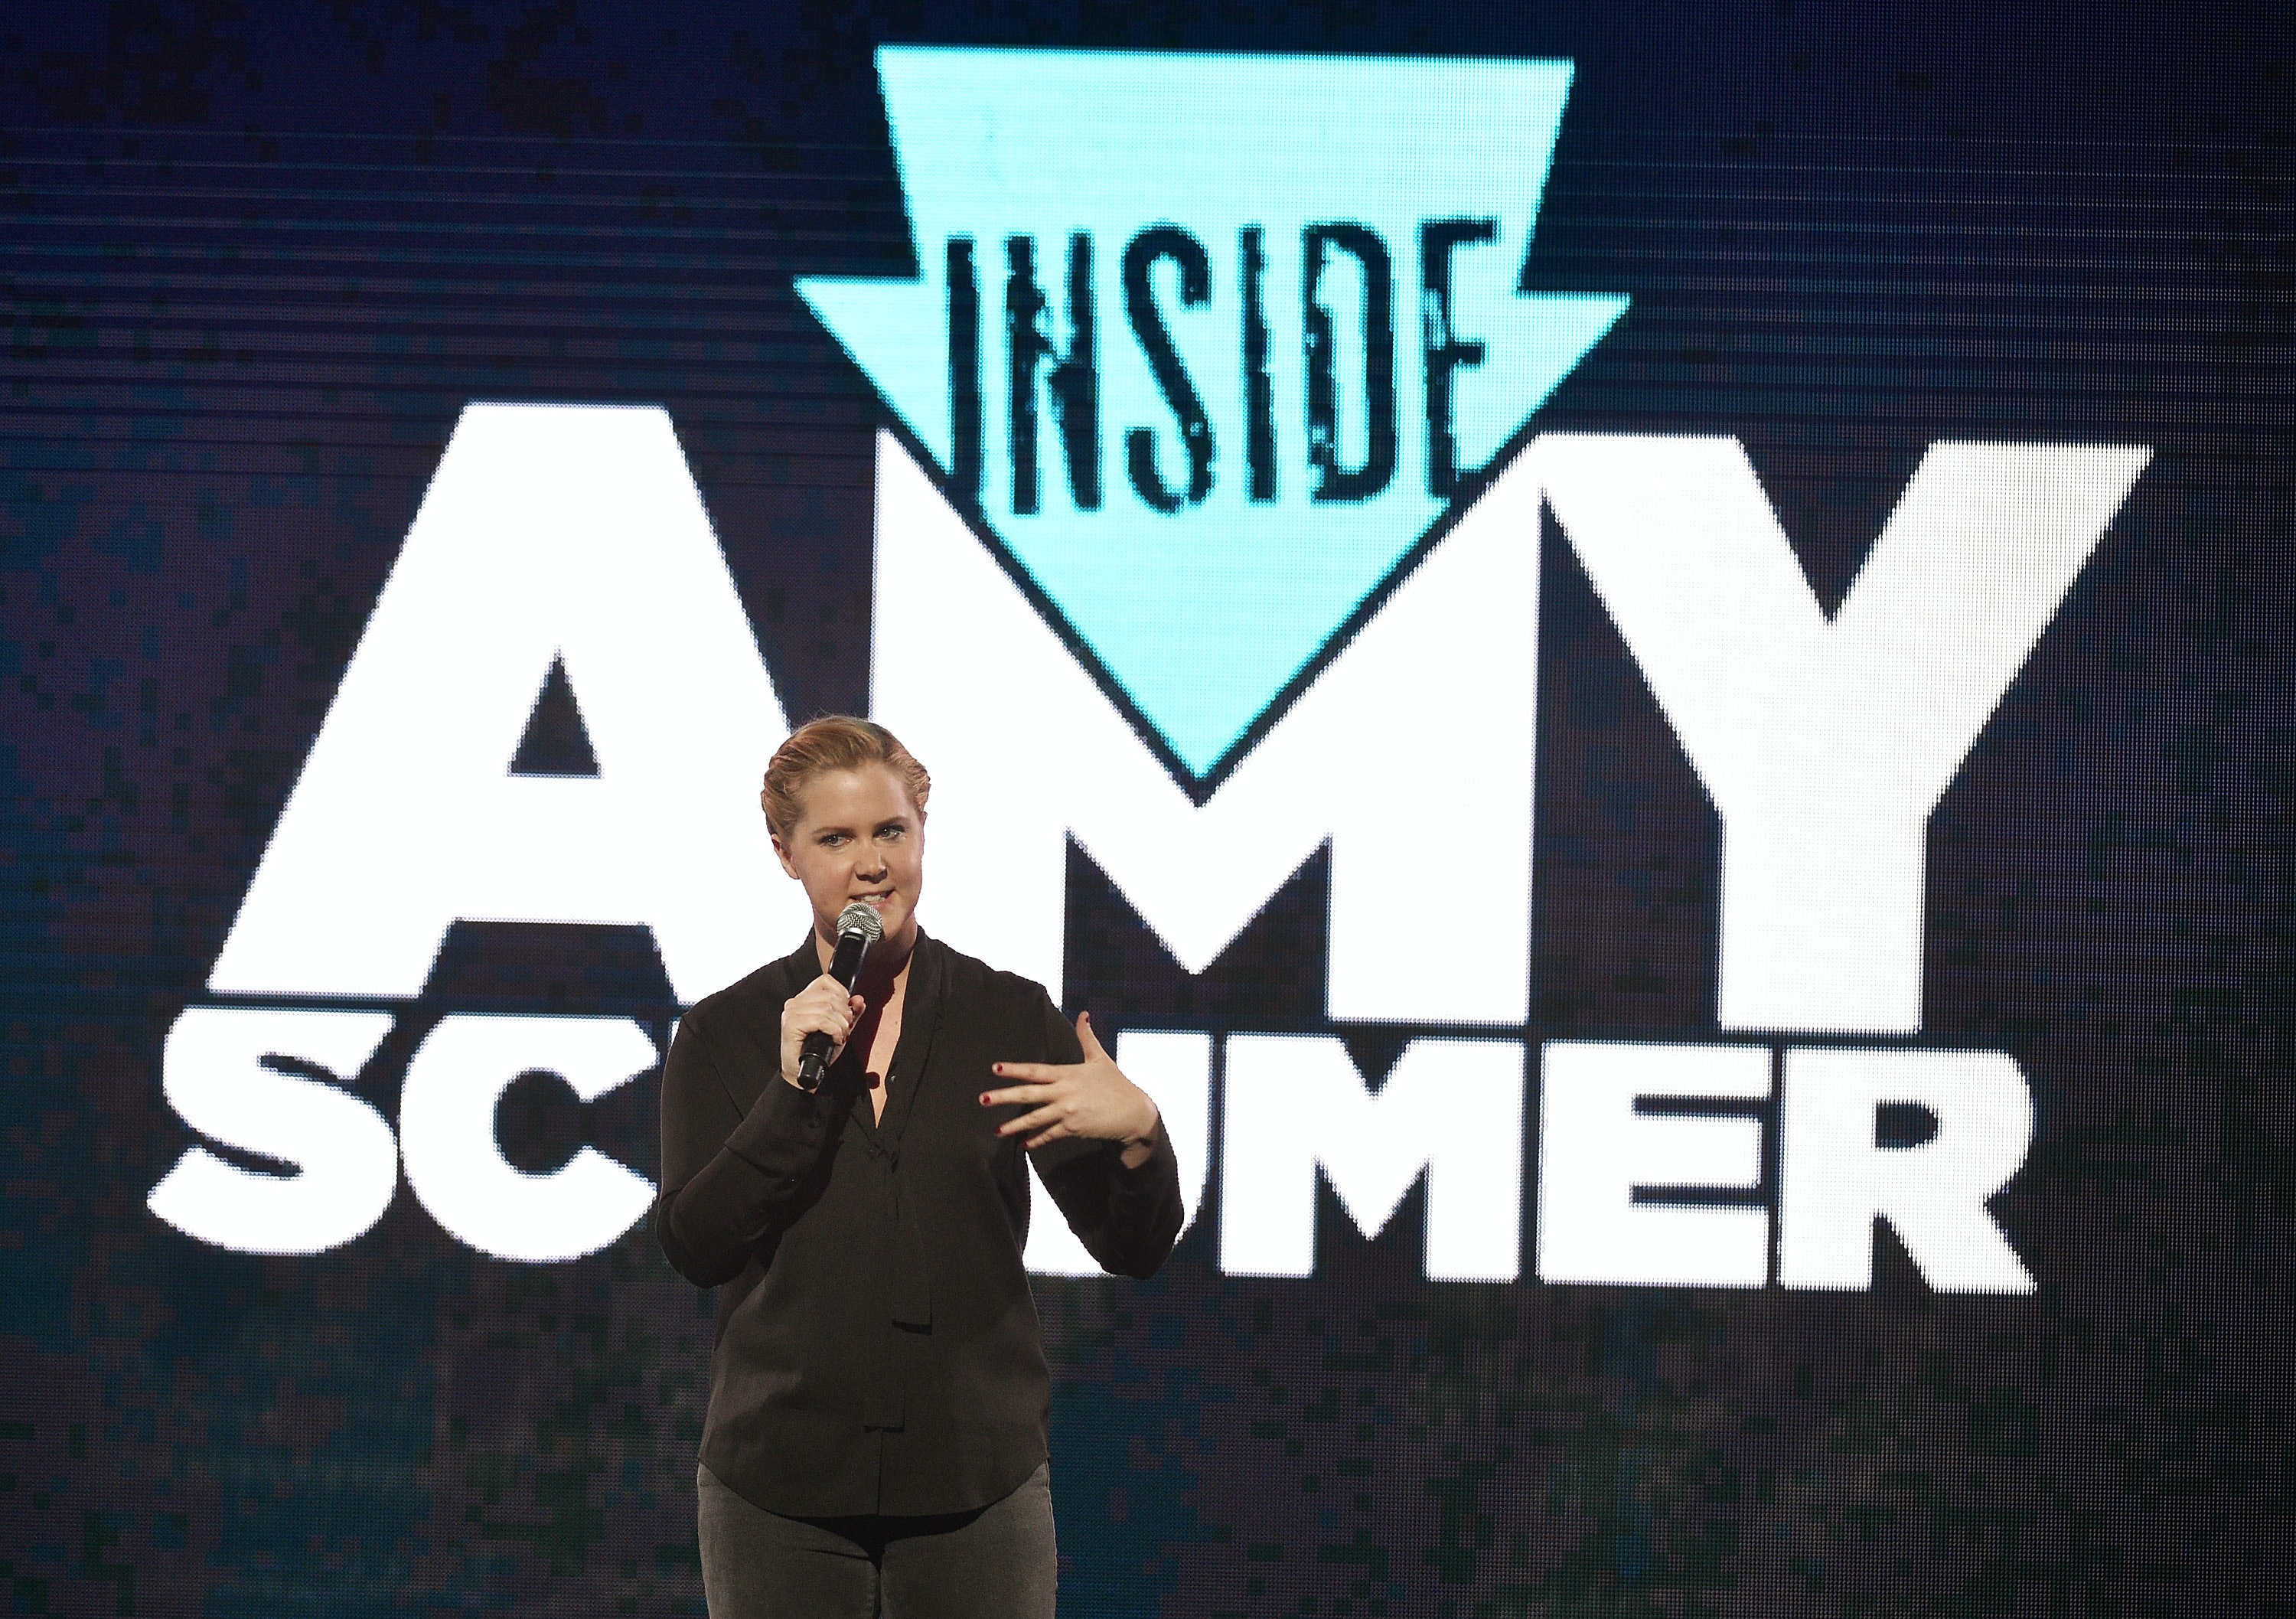 They aren't true, says Amy Schumer on rumors of equal pay